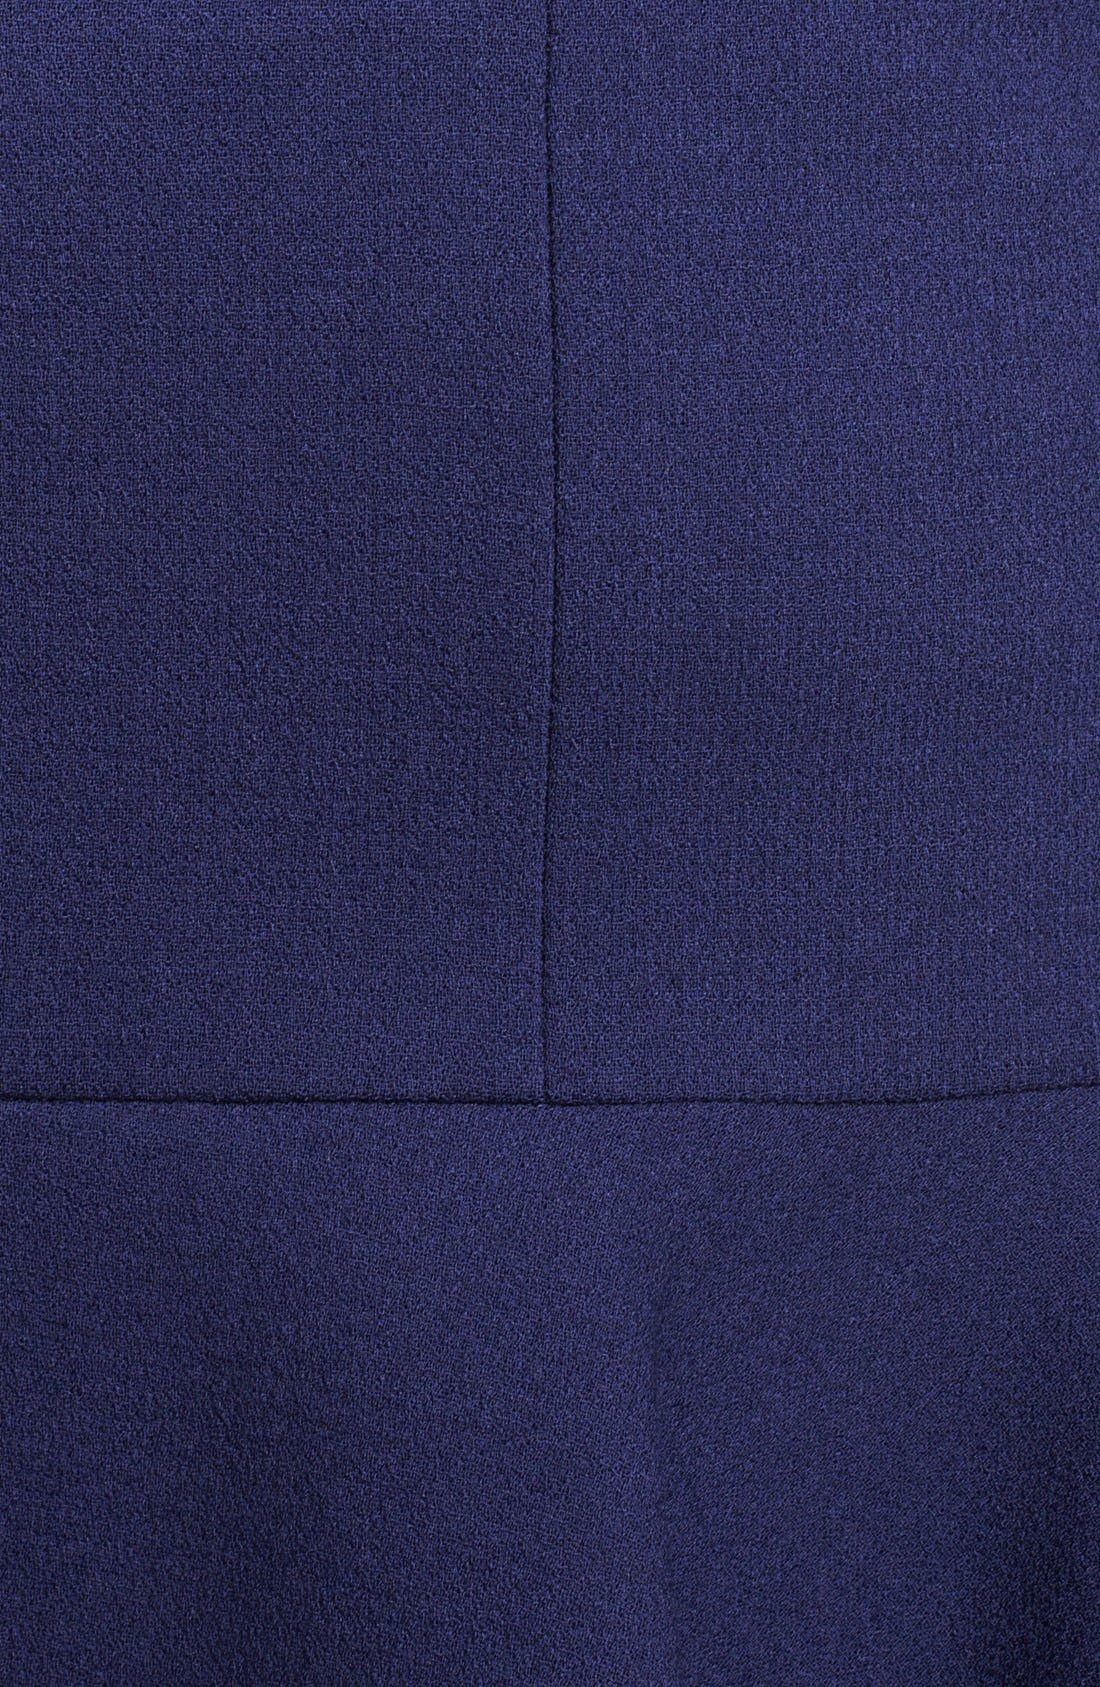 Alternate Image 3  - Michael Kors Bouclé Stretch Wool Skirt